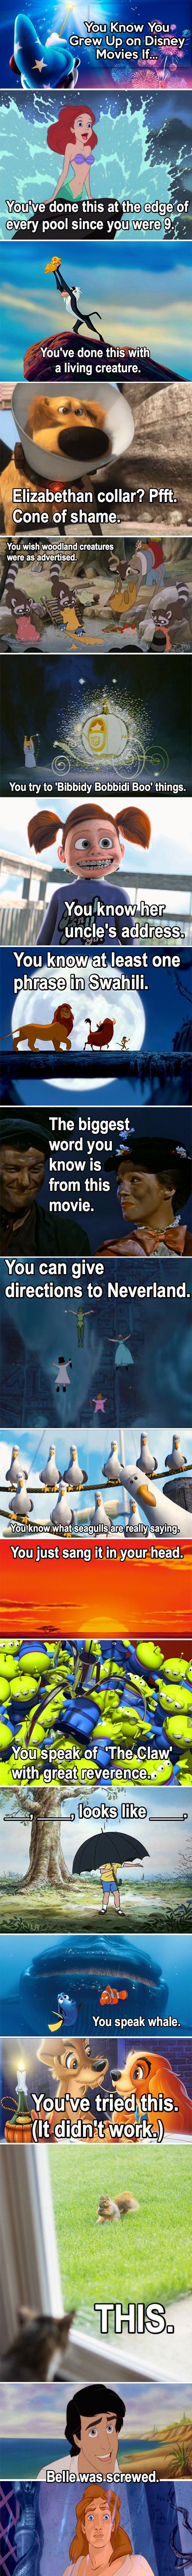 You know you grew up on Disney movies if - LolSnaps